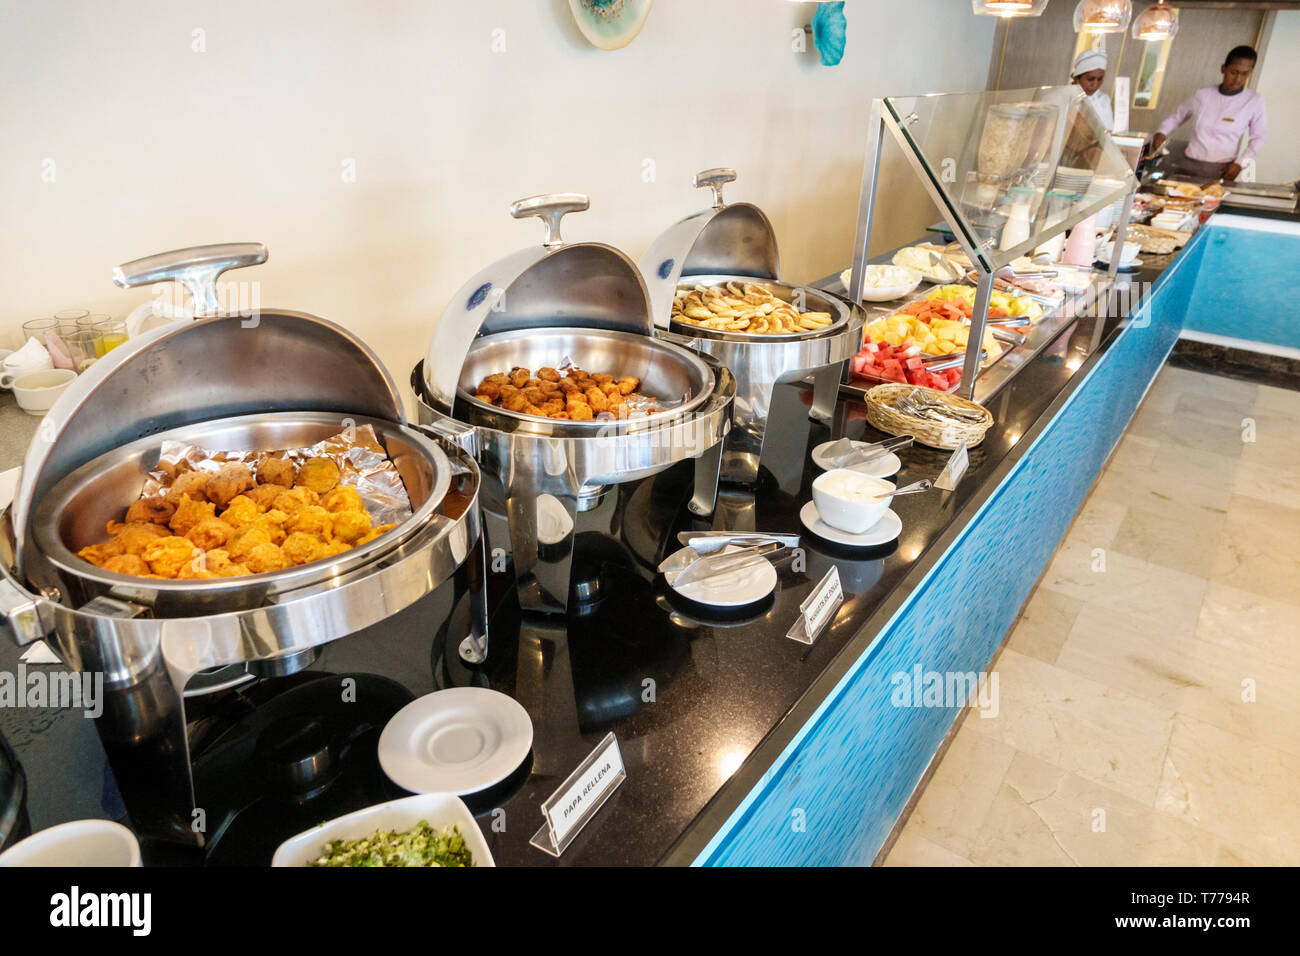 Cartagena Colombia El Laguito Hotel Dann Cartagena hotel restaurant free included breakfast buffet brunch fried potatoes chicken nuggets chafing warmi Stock Photo